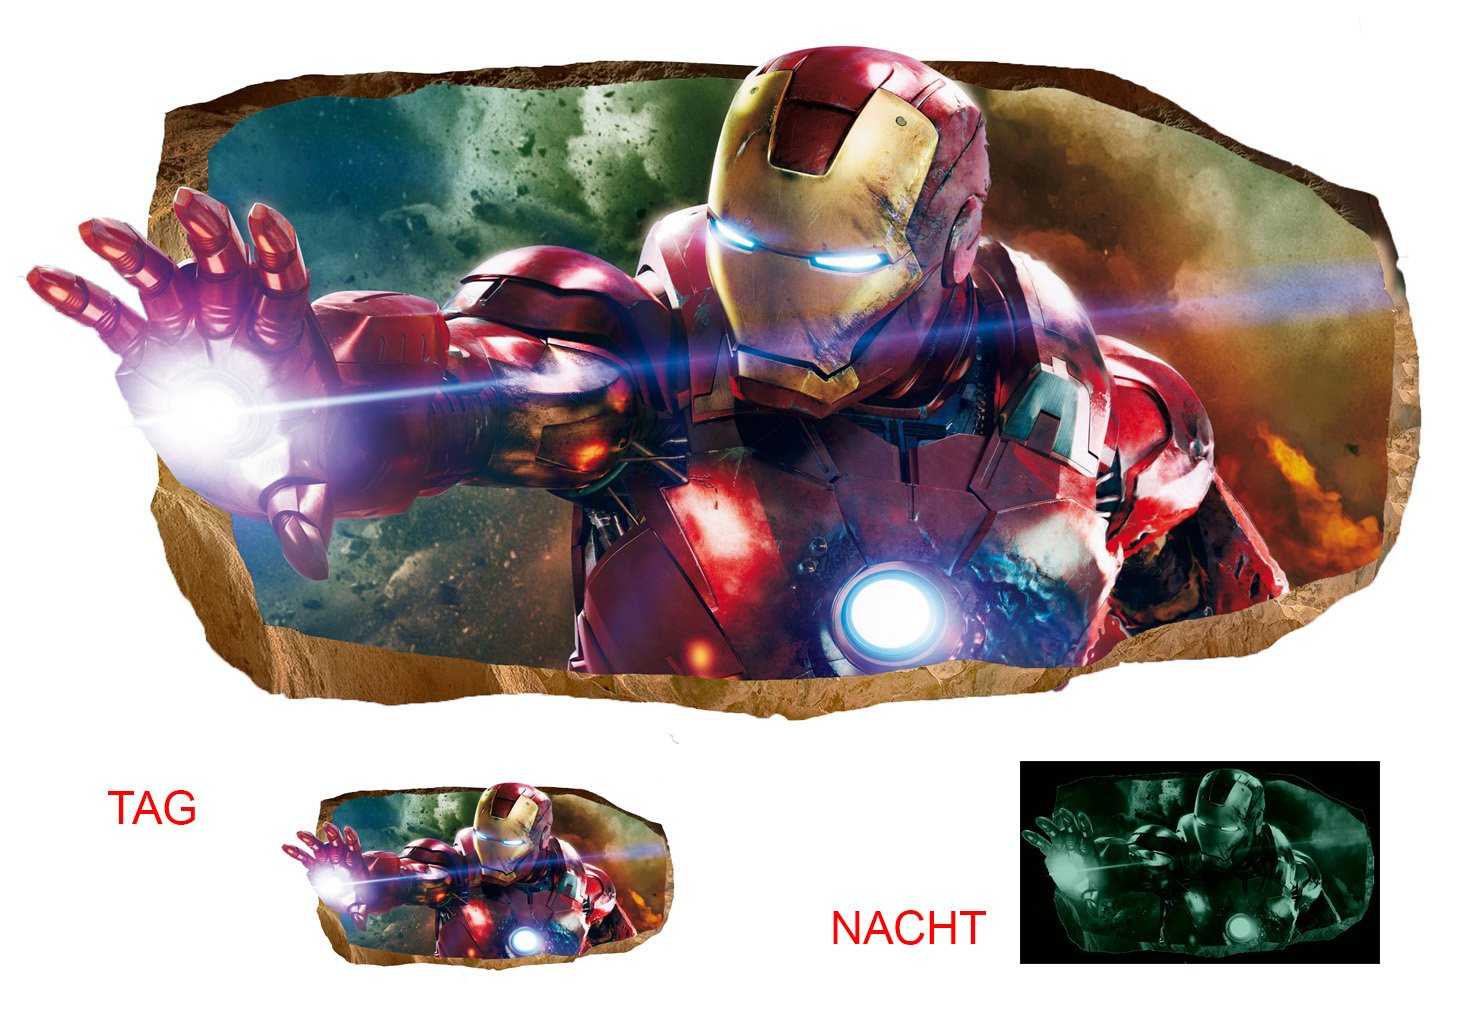 Startonight 3D Mural Wall Art Photo Decor the Power of Light Amazing Dual View Surprise Large Wall Mural Wallpaper for Living or Bedroom Movie Collection Wall Art 120 x 220 cm by Mural Wall Art